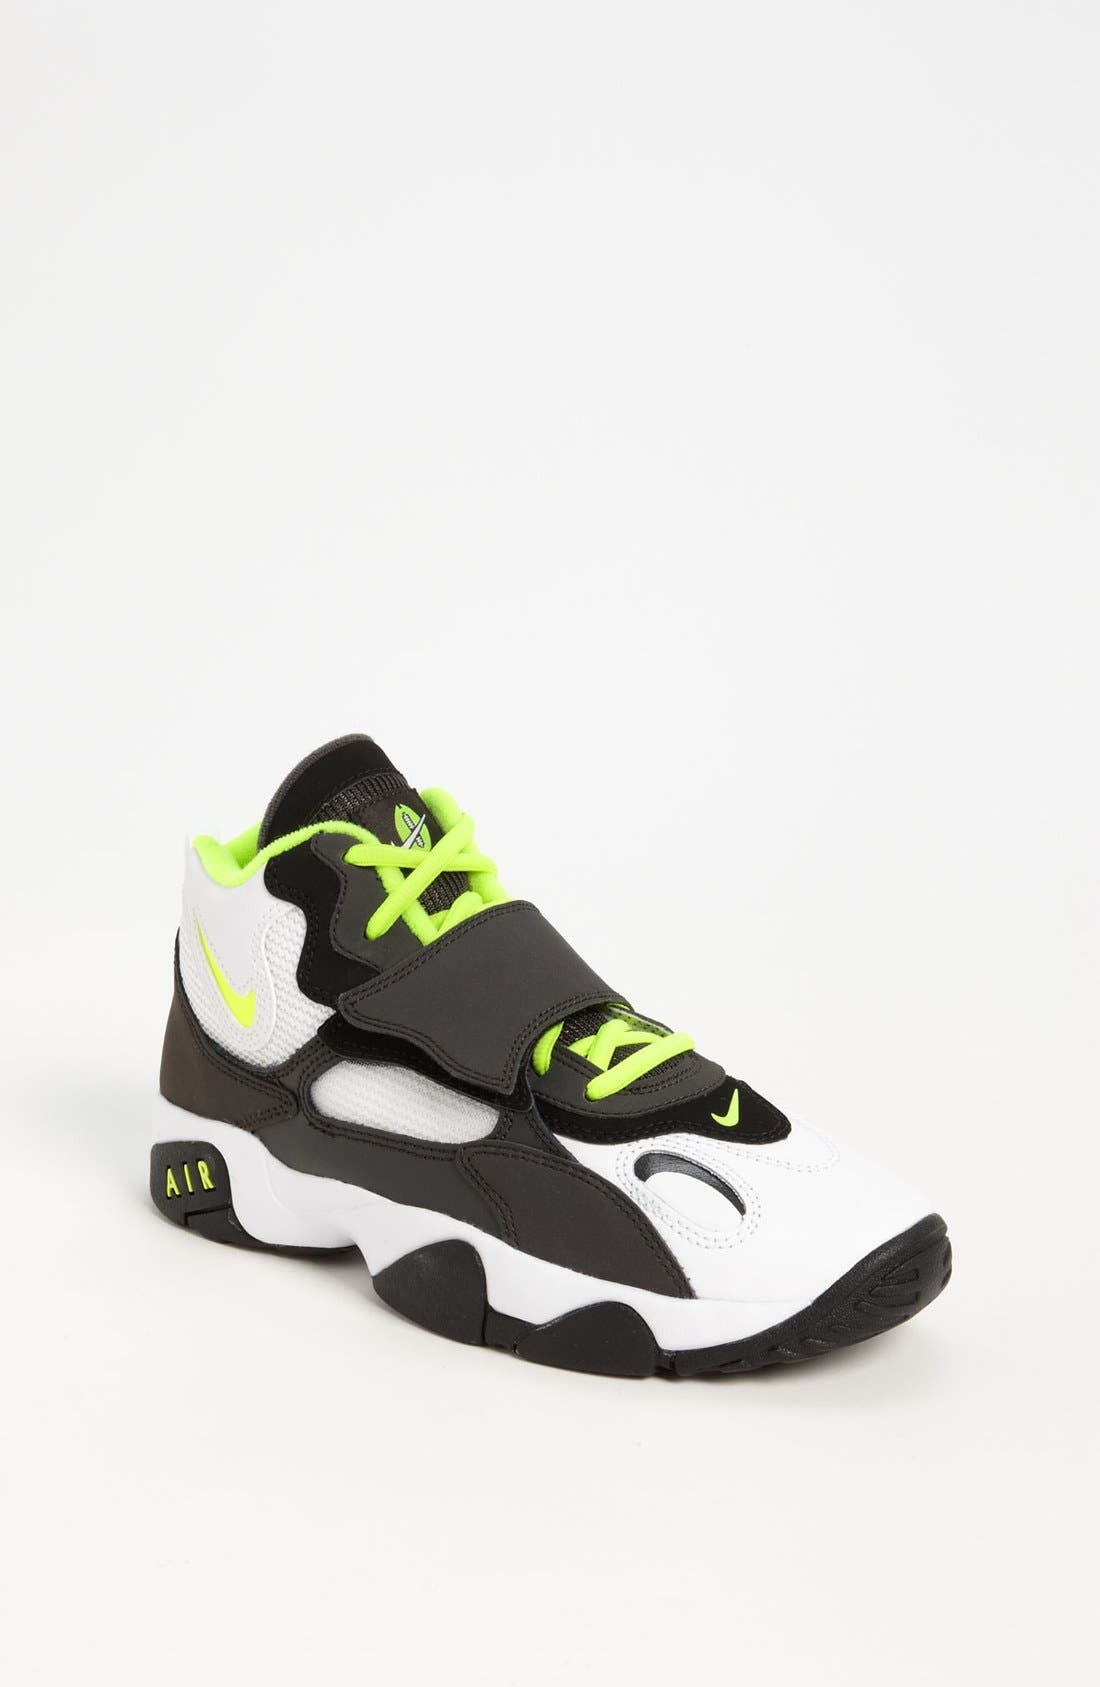 Alternate Image 1 Selected - Nike 'Air® Speed Turf' Athletic Shoe (Big Kid)